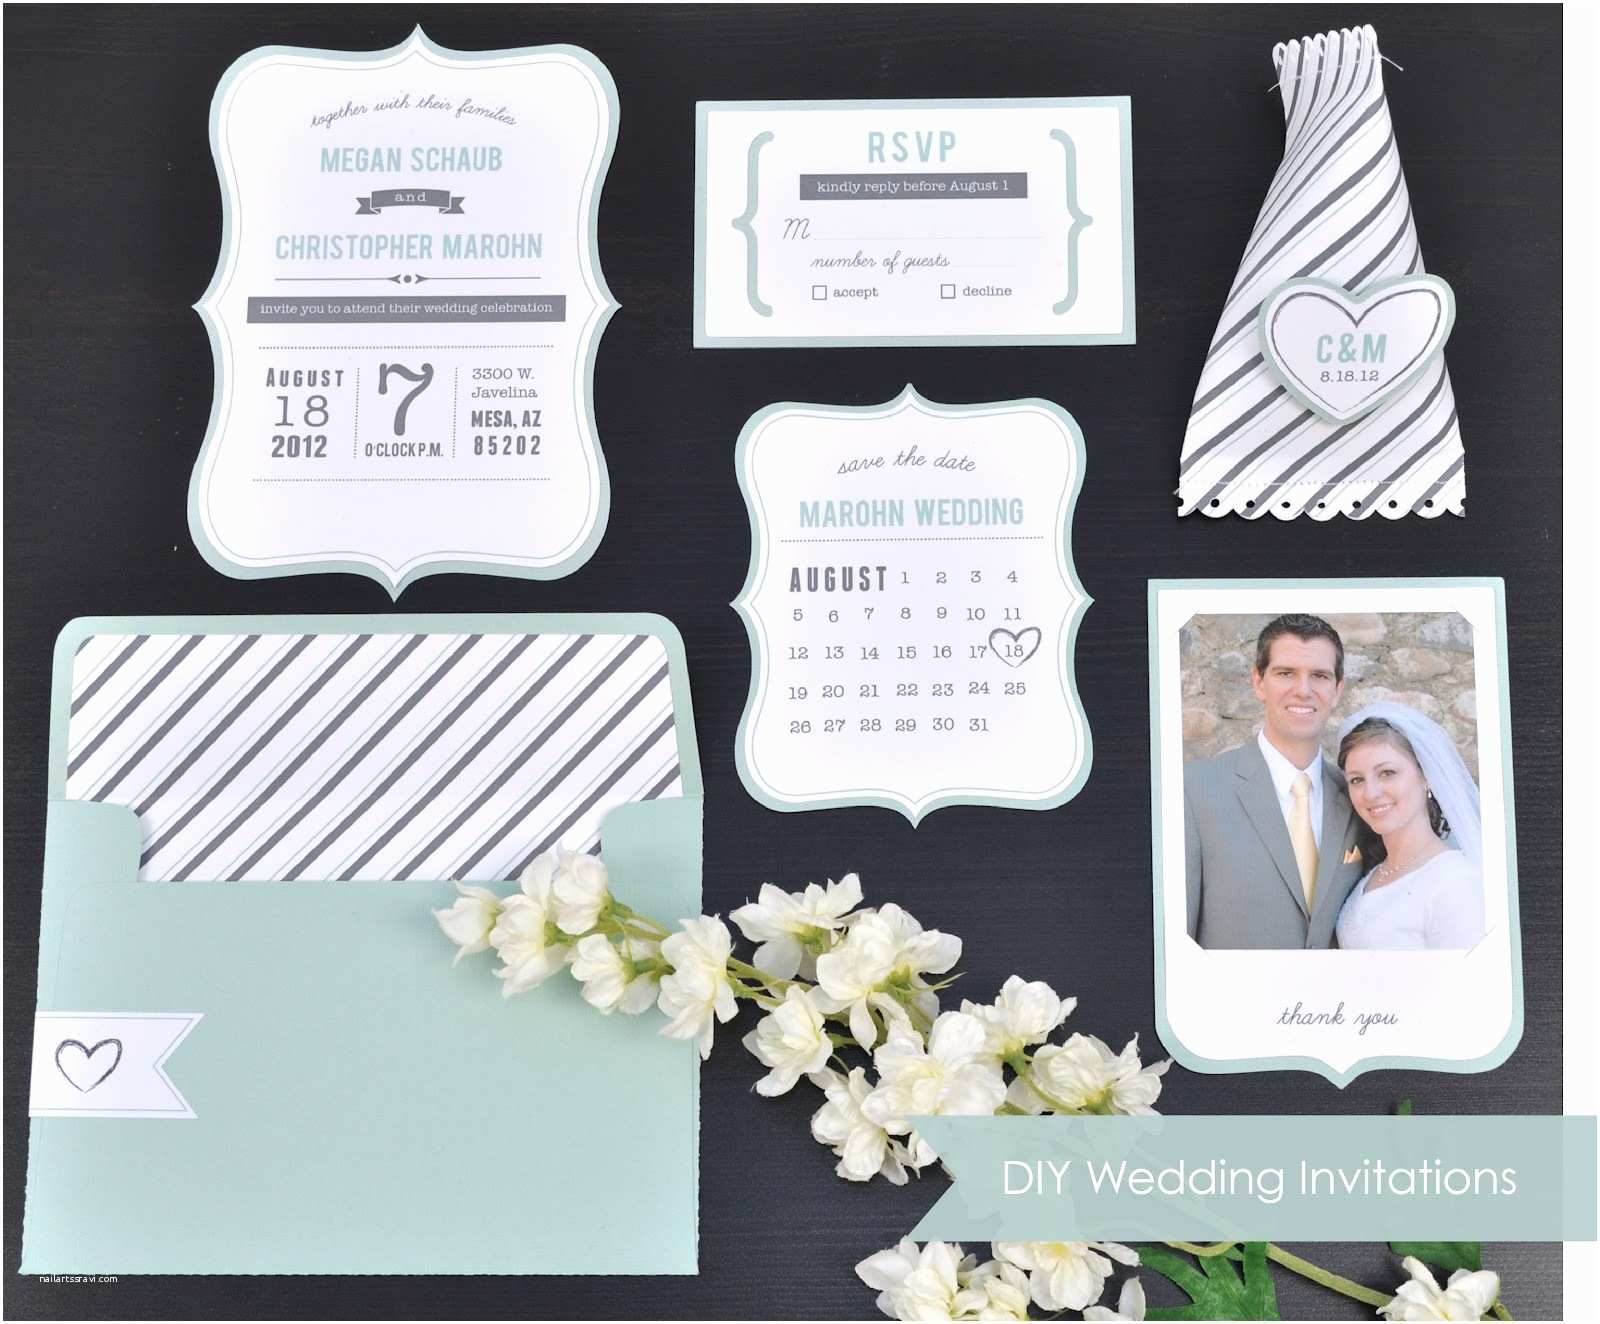 Making Wedding Invitations at Home 10 Breathtaking Diy Wedding Invitations Ideas to Inspire